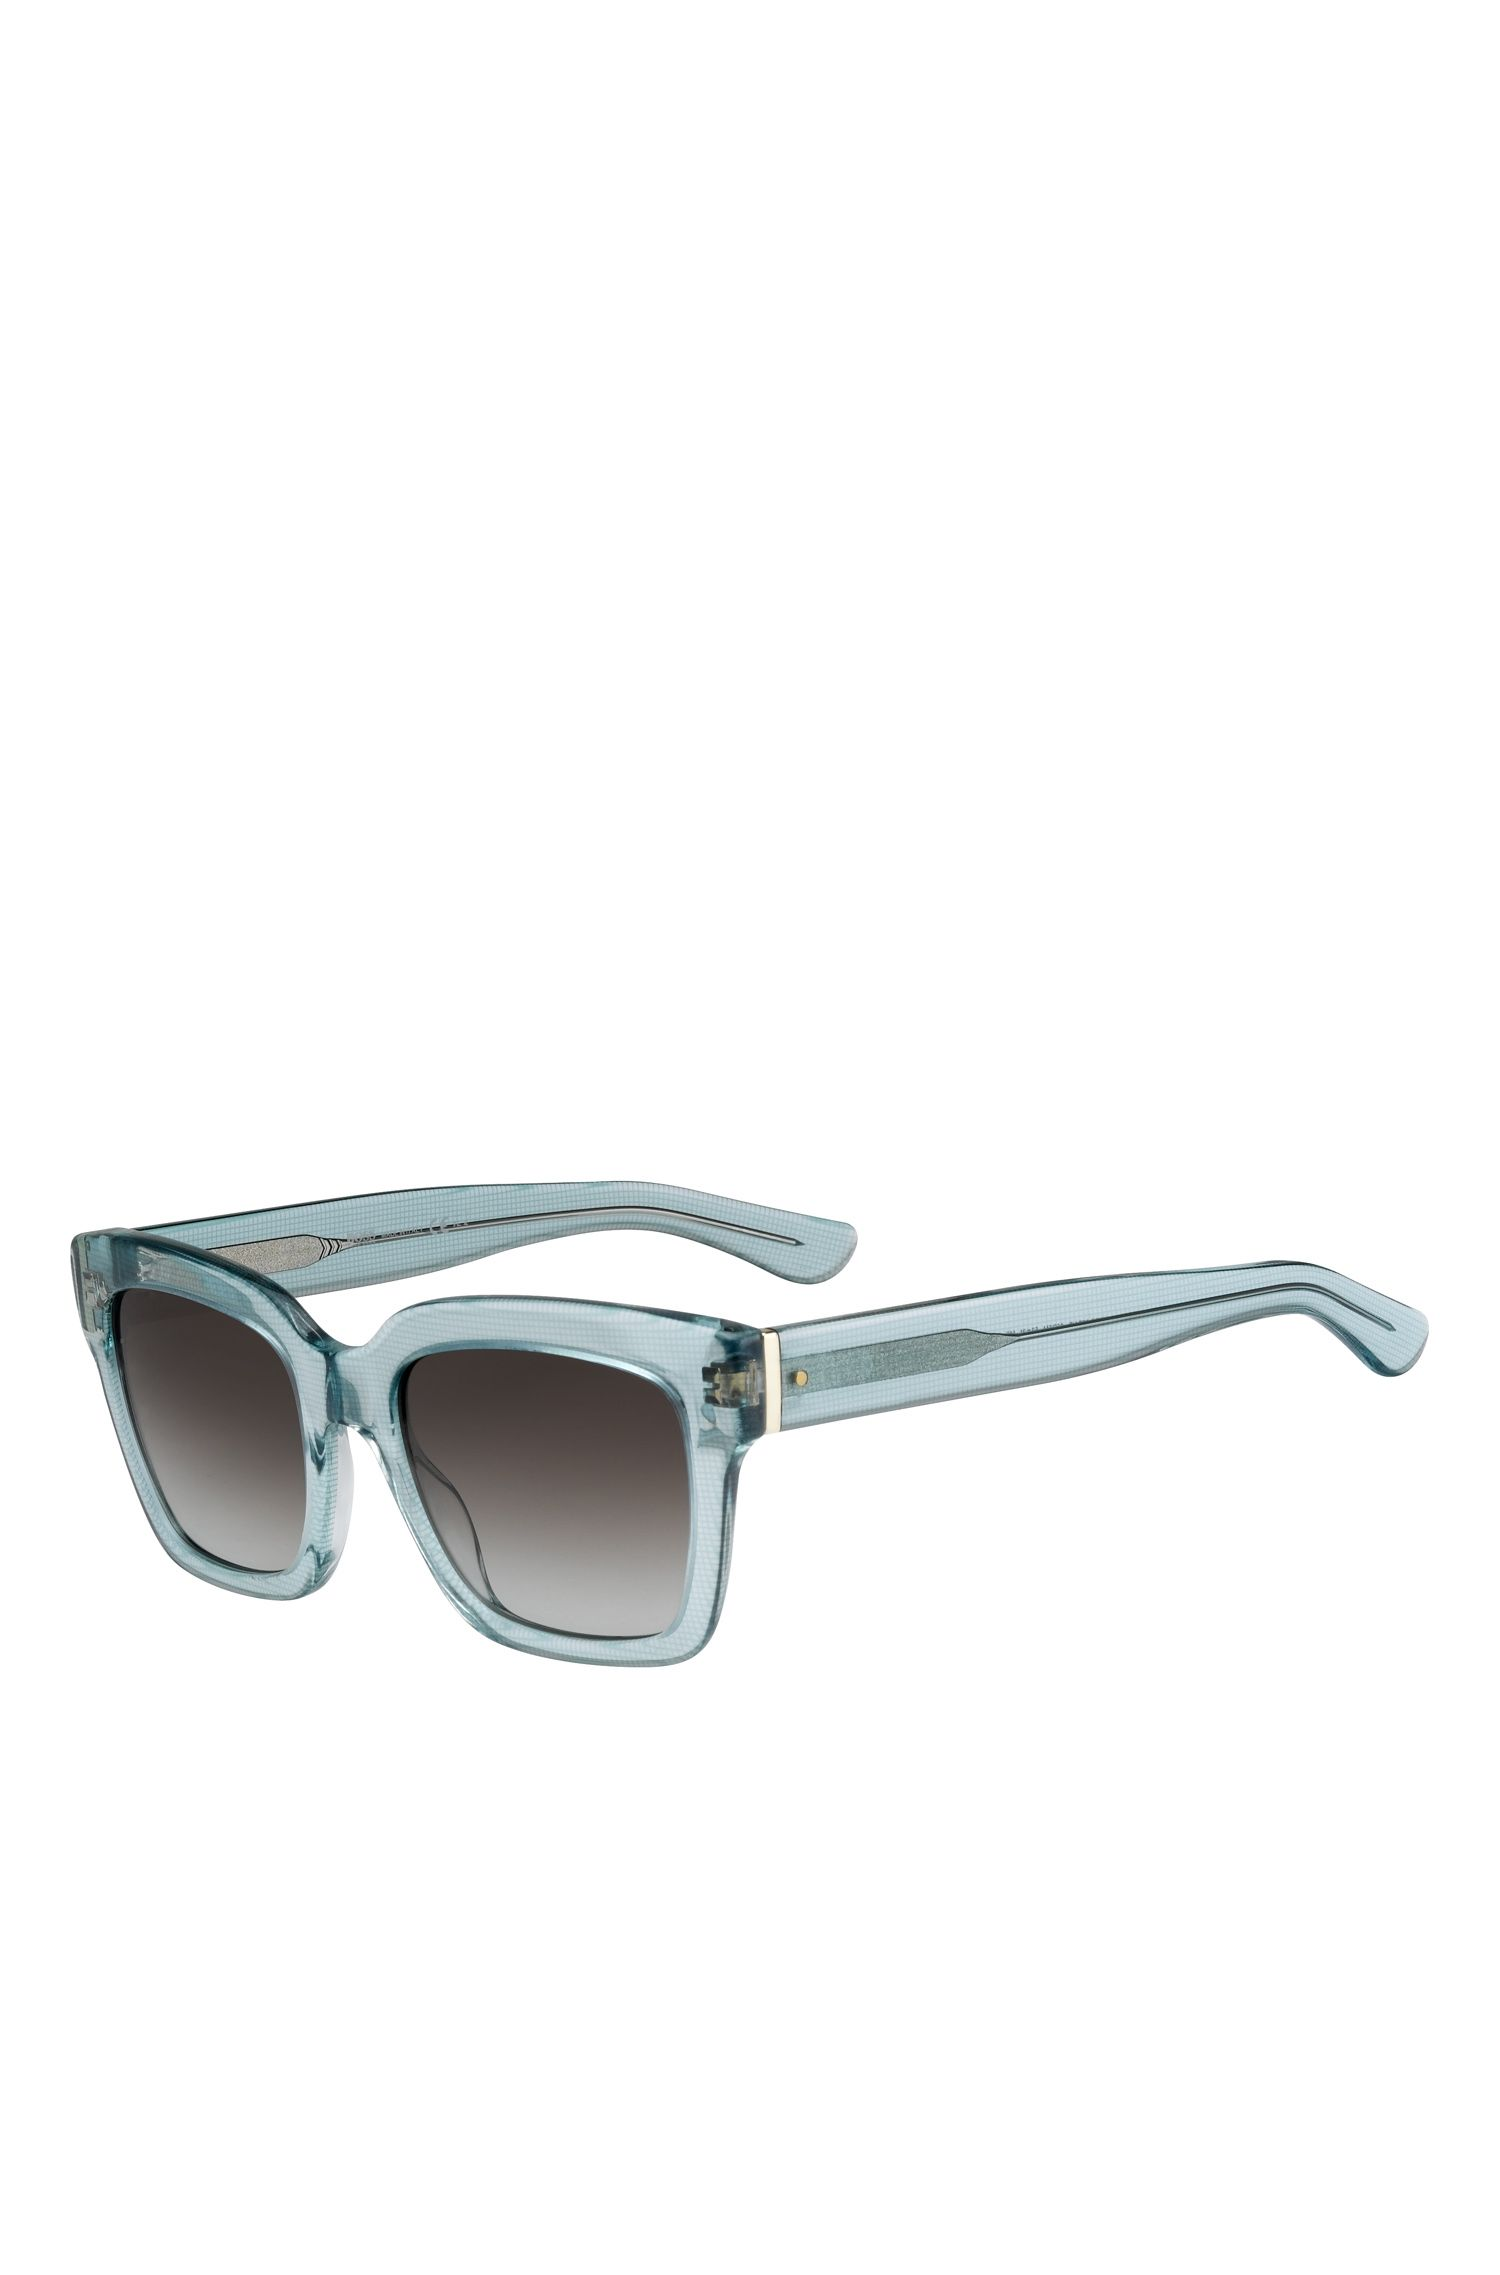 Gray Gradient Lens Rectangular Sunglasses  | BOSS 0674S, Assorted-Pre-Pack